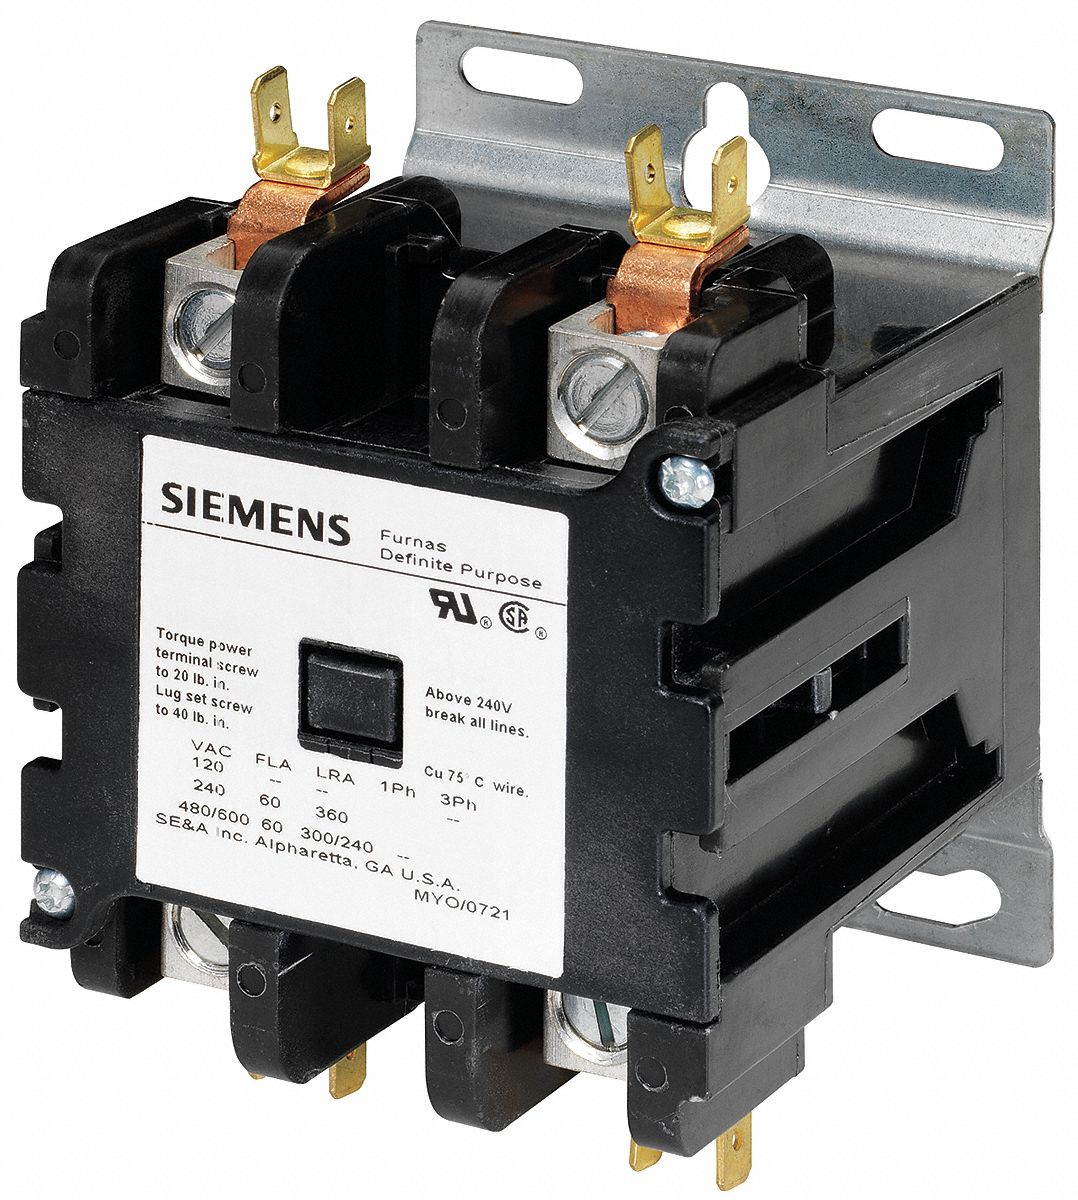 Square D Definite Purpose Contactor Wiring Diagram Another Blog Images Gallery Siemens 120vac No Of Poles 2 25 Full Load Amps Rh Grainger Com